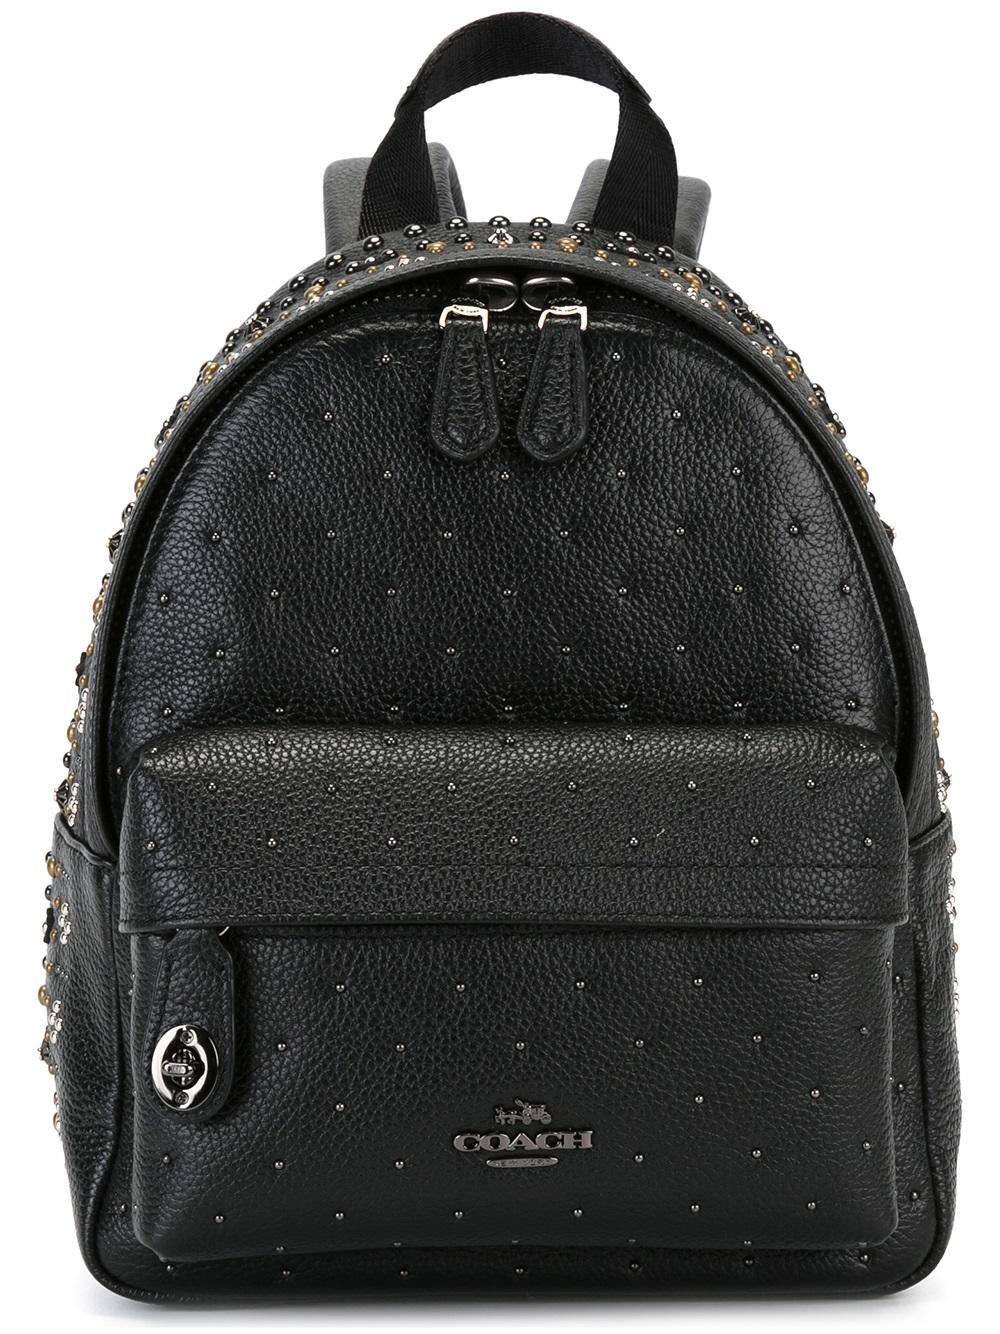 74471fac24 ... new arrivals lyst coach mini studded backpack in black 70321 ce2f5